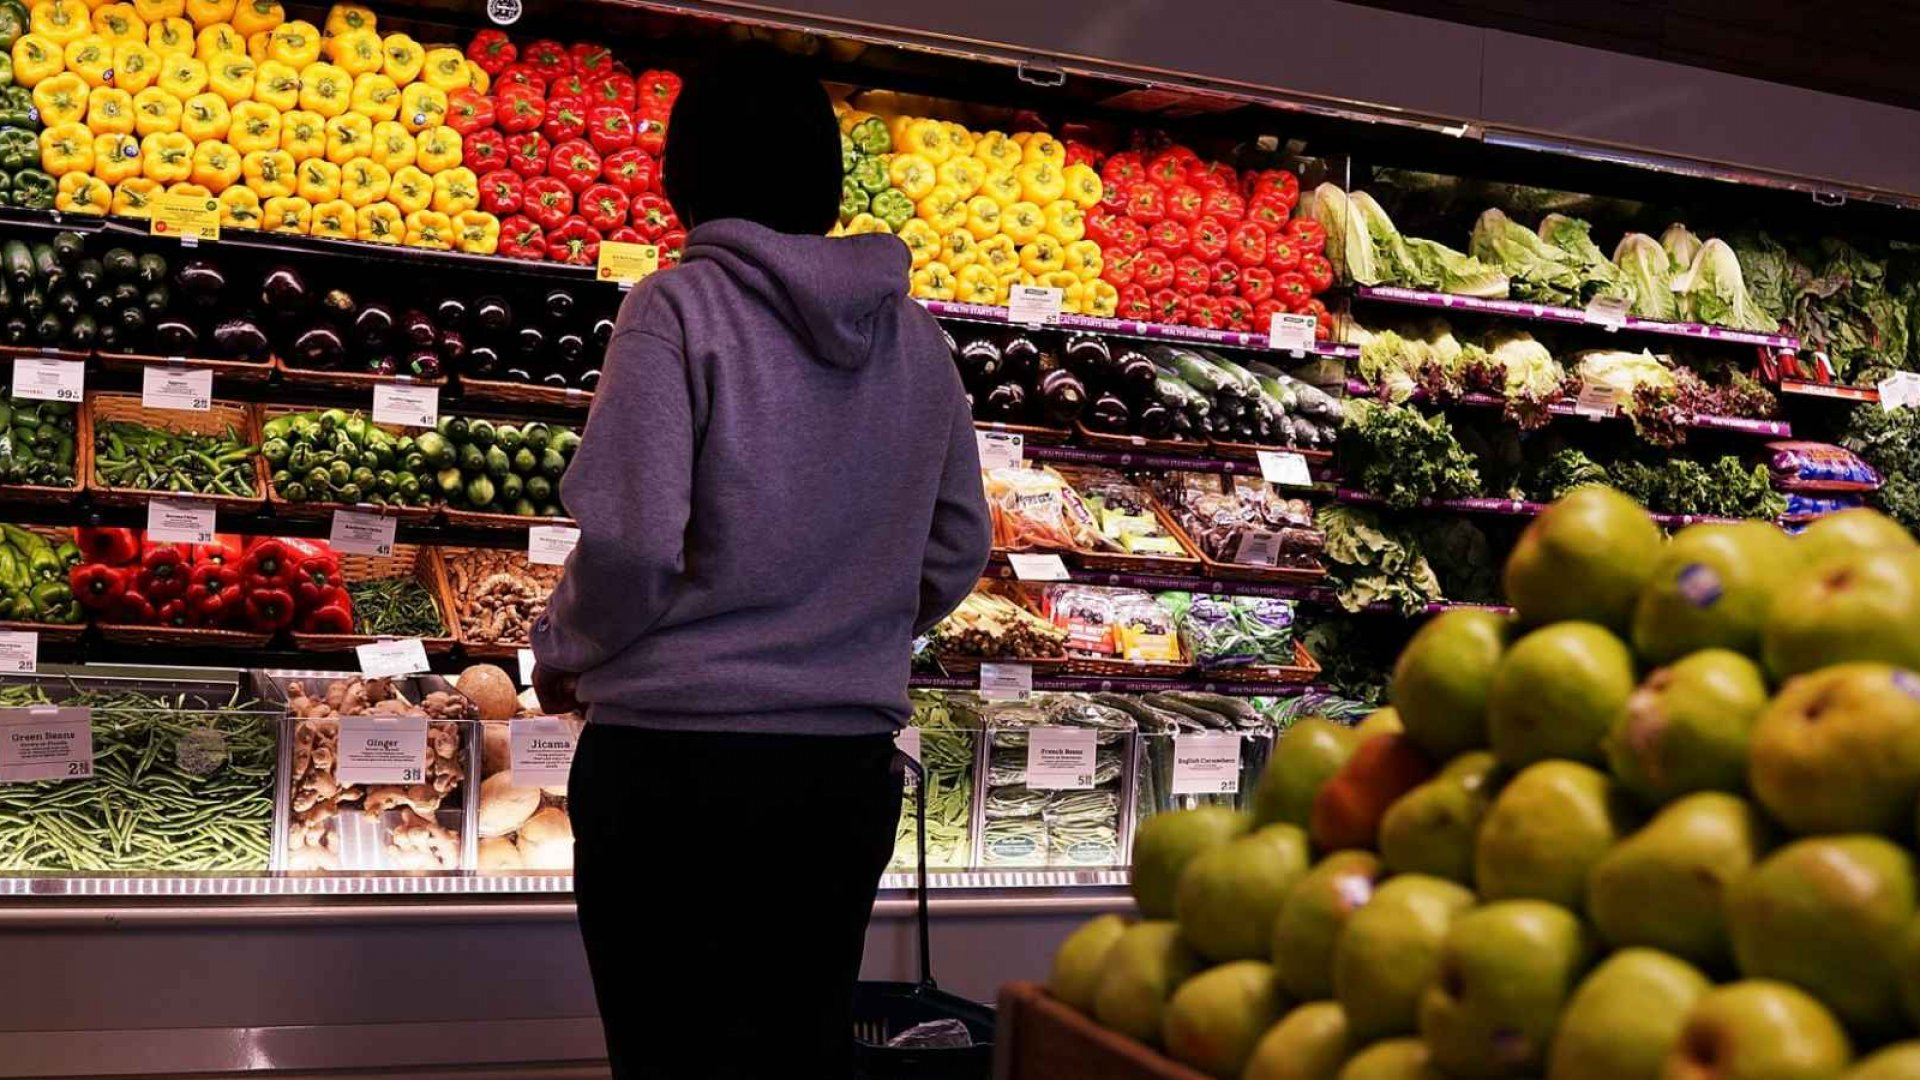 Whole Foods to Open New Lower-Cost Chain for Millennials